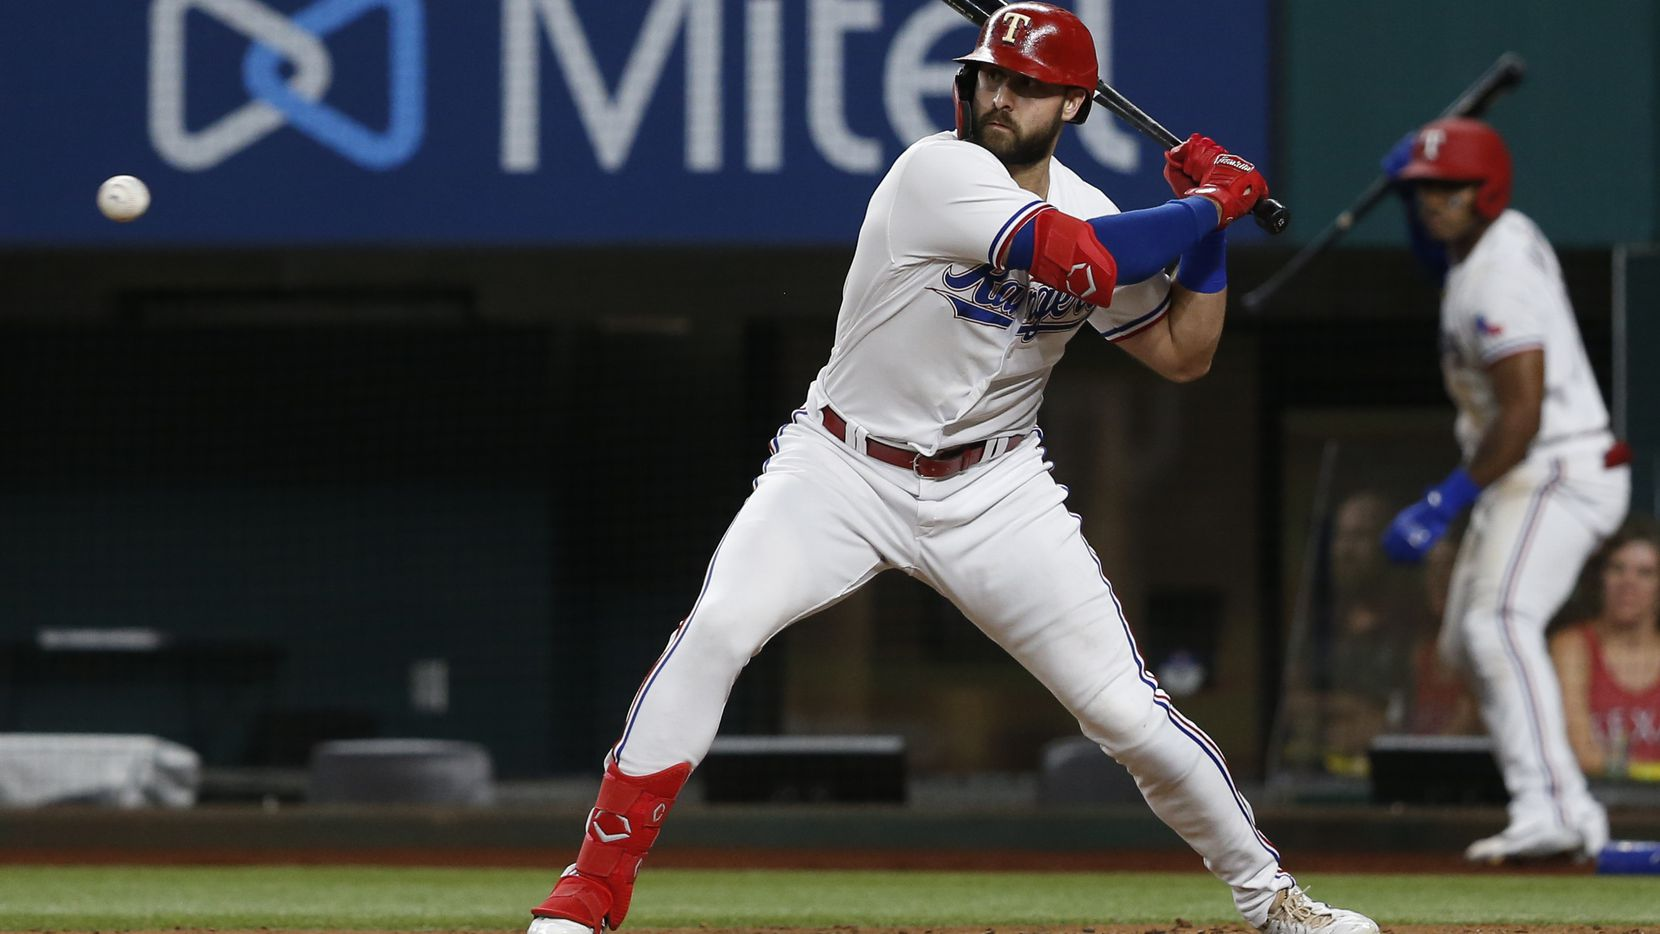 Texas Rangers designated hitter Joey Gallo (13) eyes the ball during the fifth inning against the Oakland Athletics at Globe Life Field on Tuesday, June 22, 2021, in Arlington. (Elias Valverde II/The Dallas Morning News)